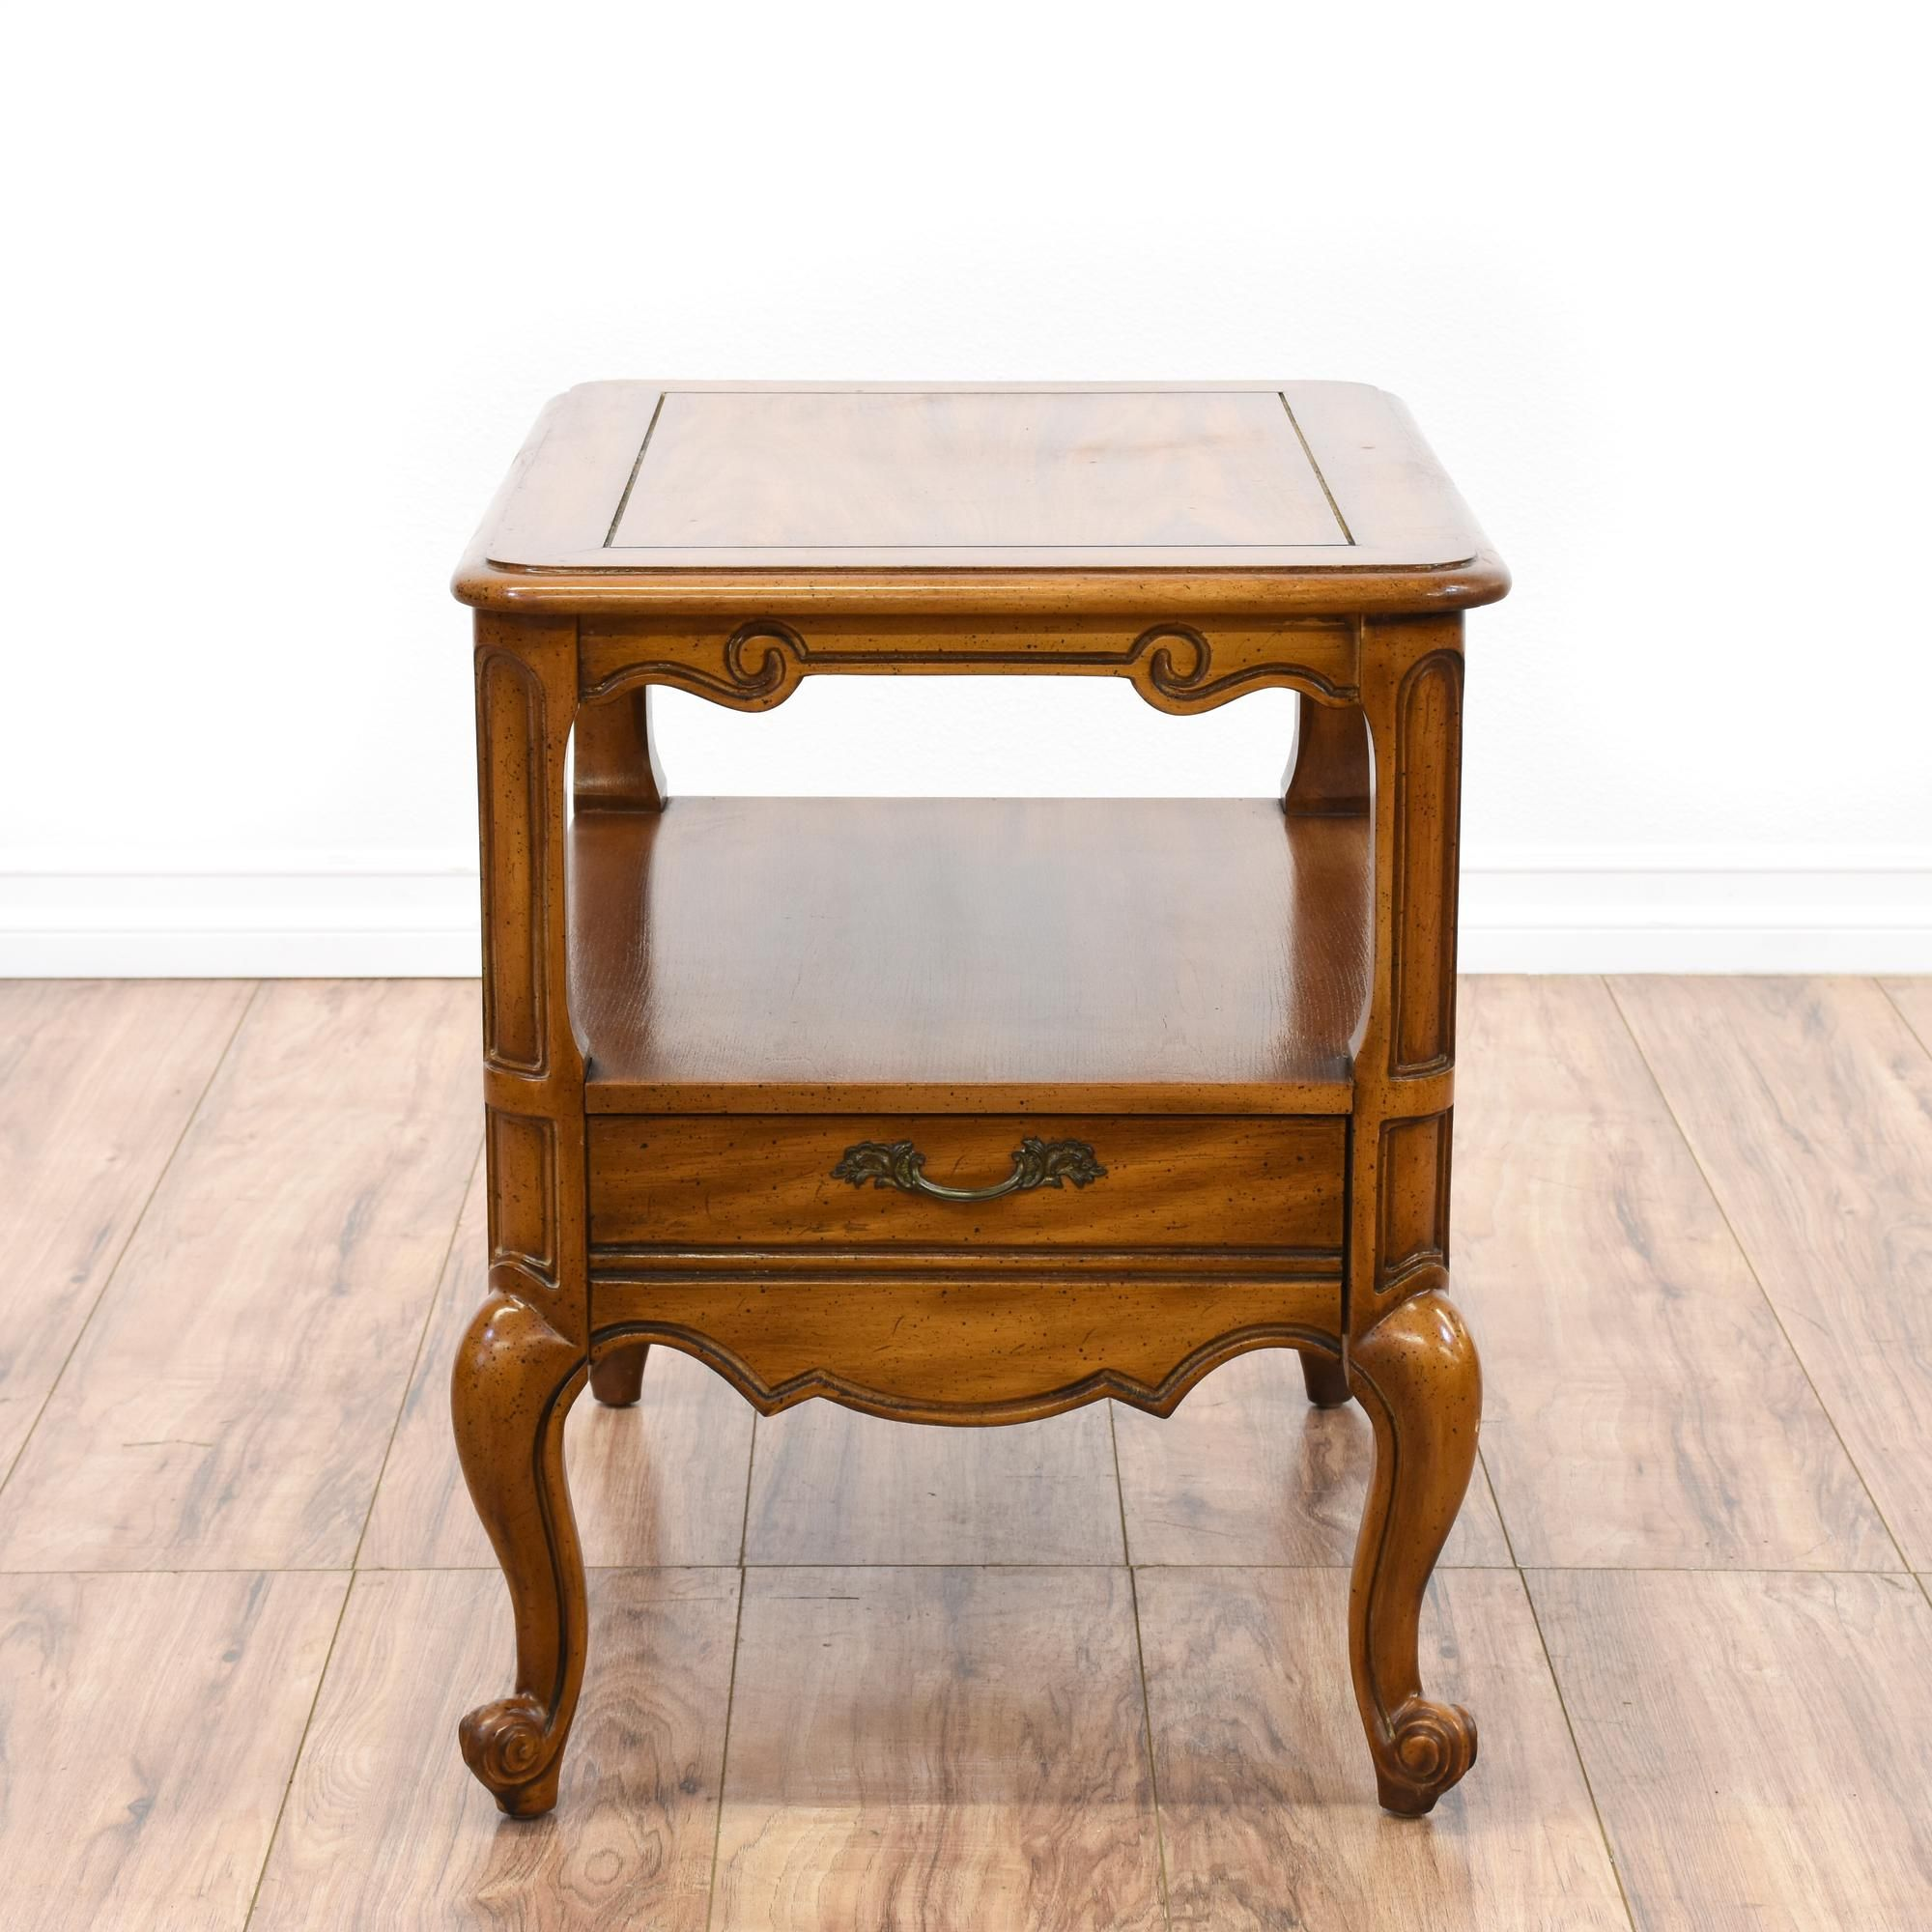 This Weiman end table is featured in a solid wood with a glossy